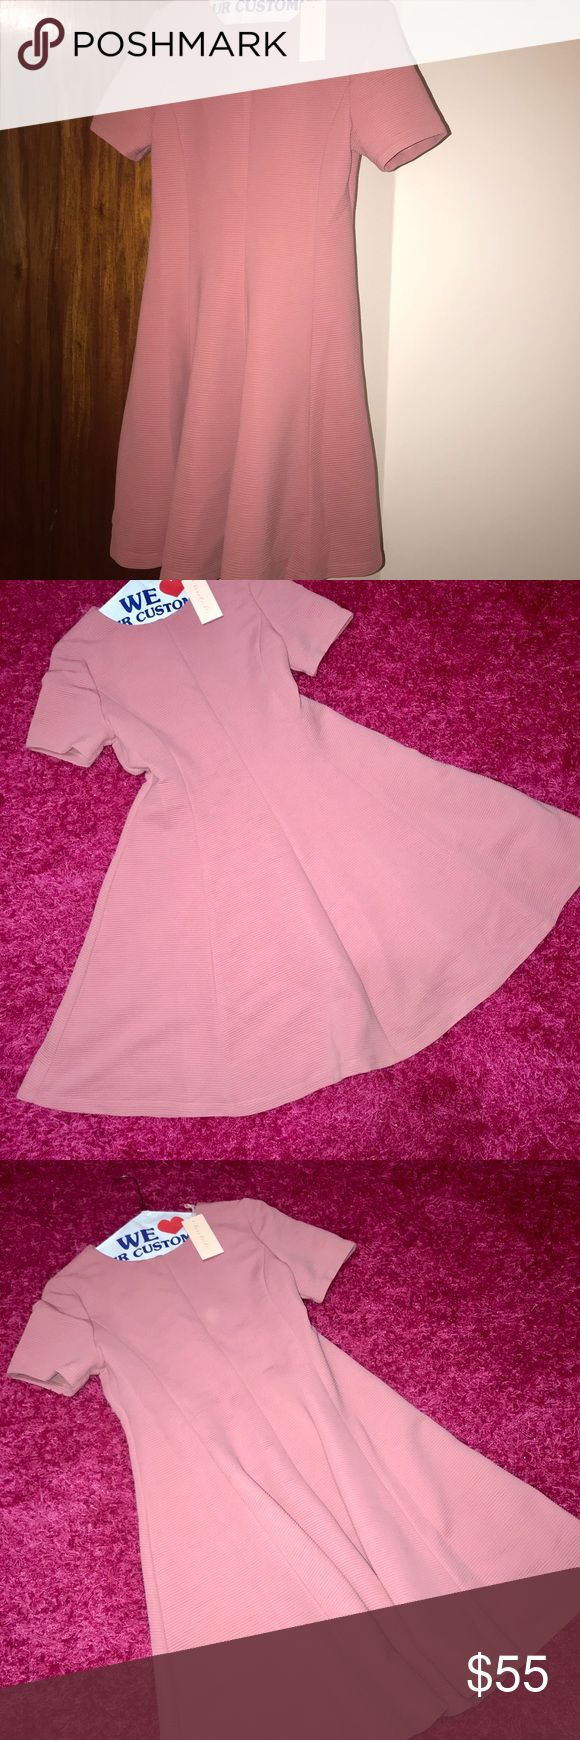 Hutch Fit flare blush pink dress Size: M petite  Condition: new, never used Hutch Dresses Midi